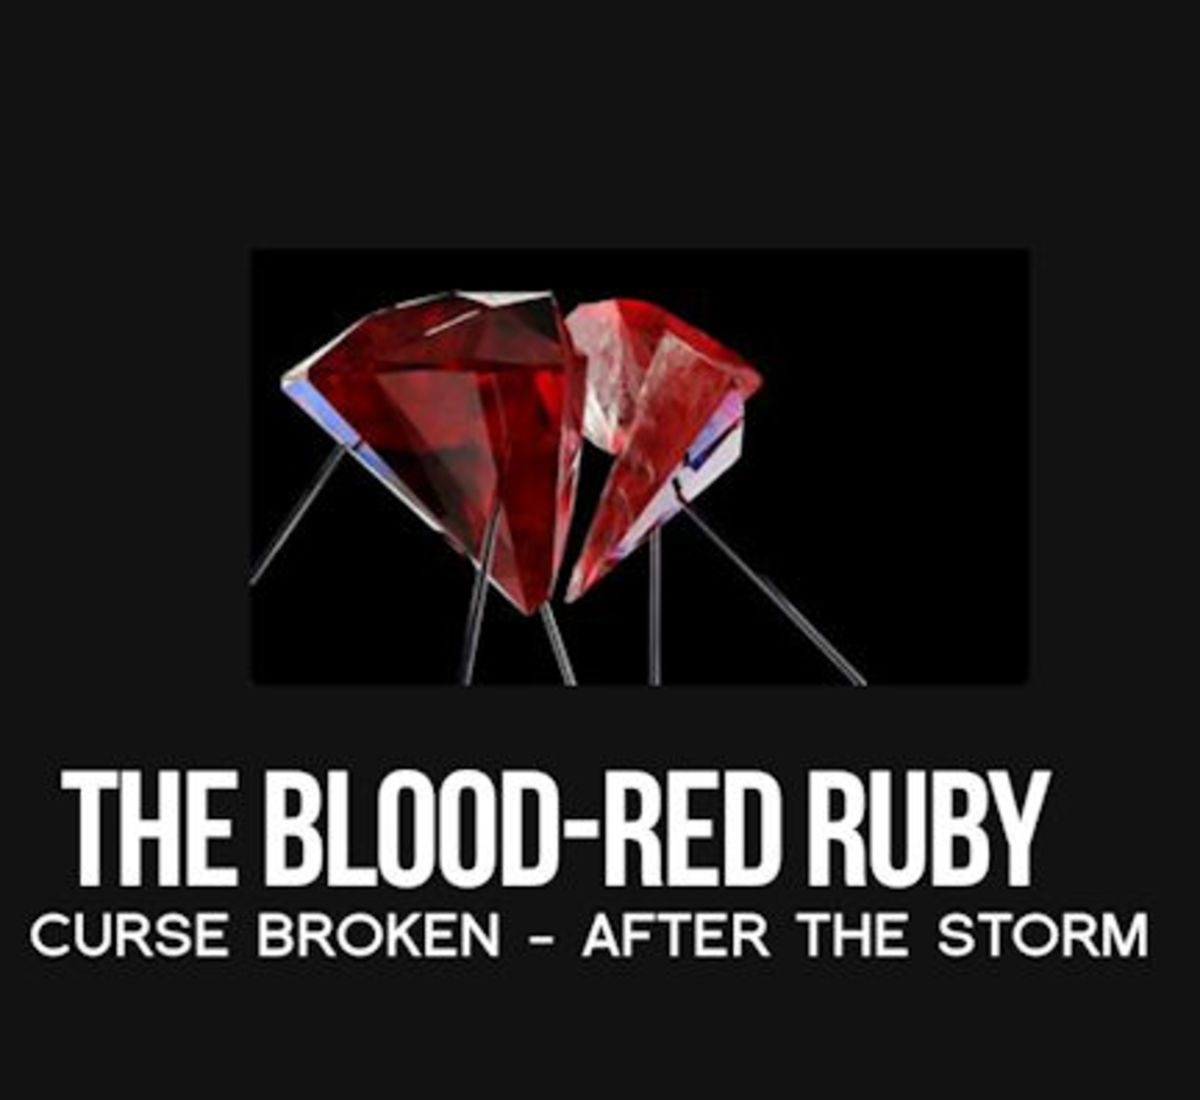 the-blood-red-ruby-after-the-storm-16